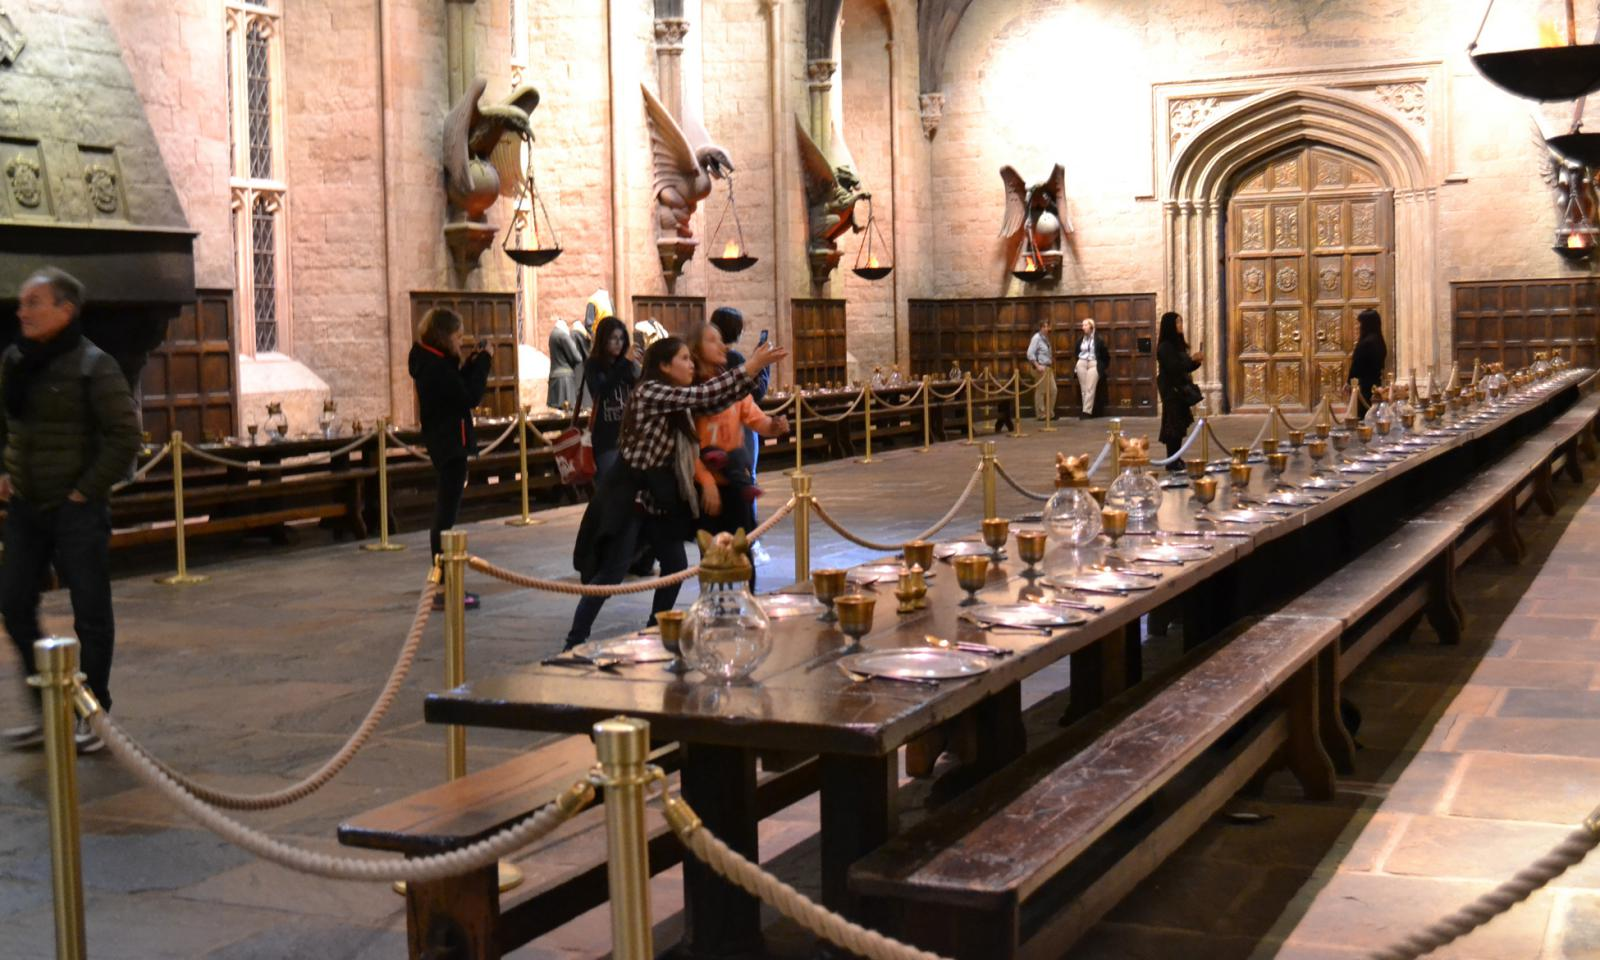 harry-potter-estudios-londres-170403111847009-1600x960